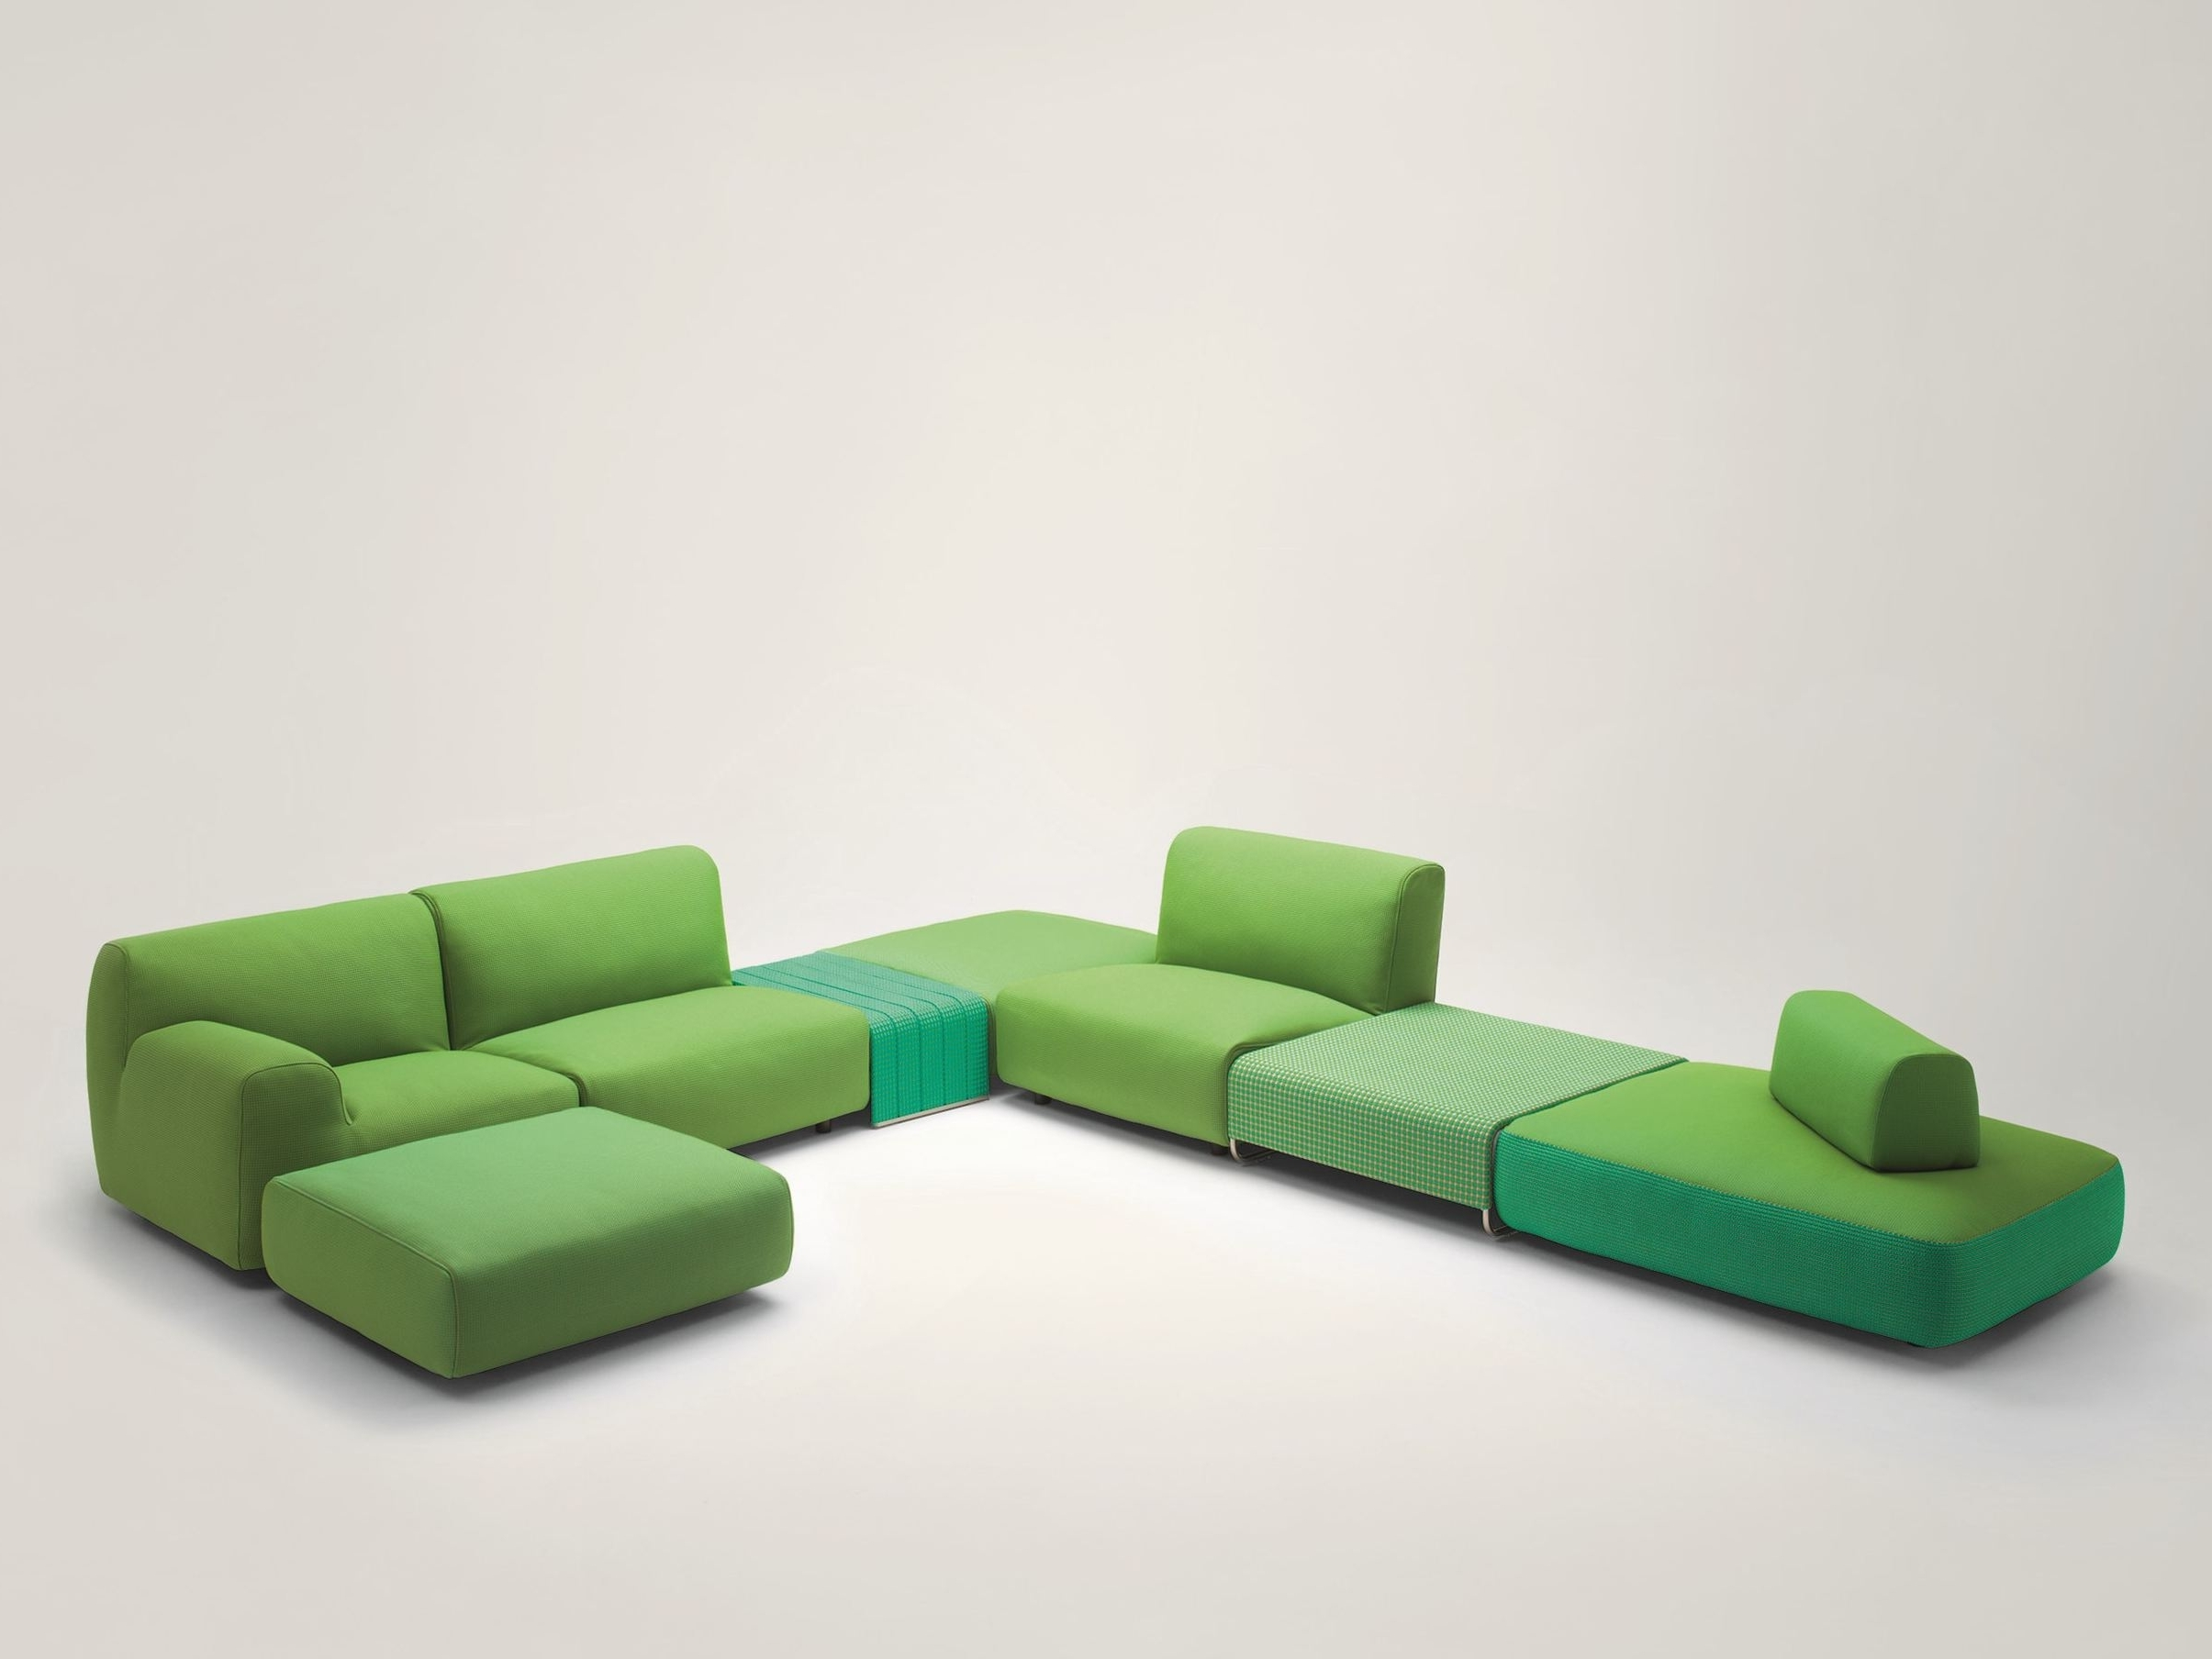 Sectional Sofa With Removable Cover Welcome Aqua Collection Intended For Most Current Removable Covers Sectional Sofas (View 19 of 20)